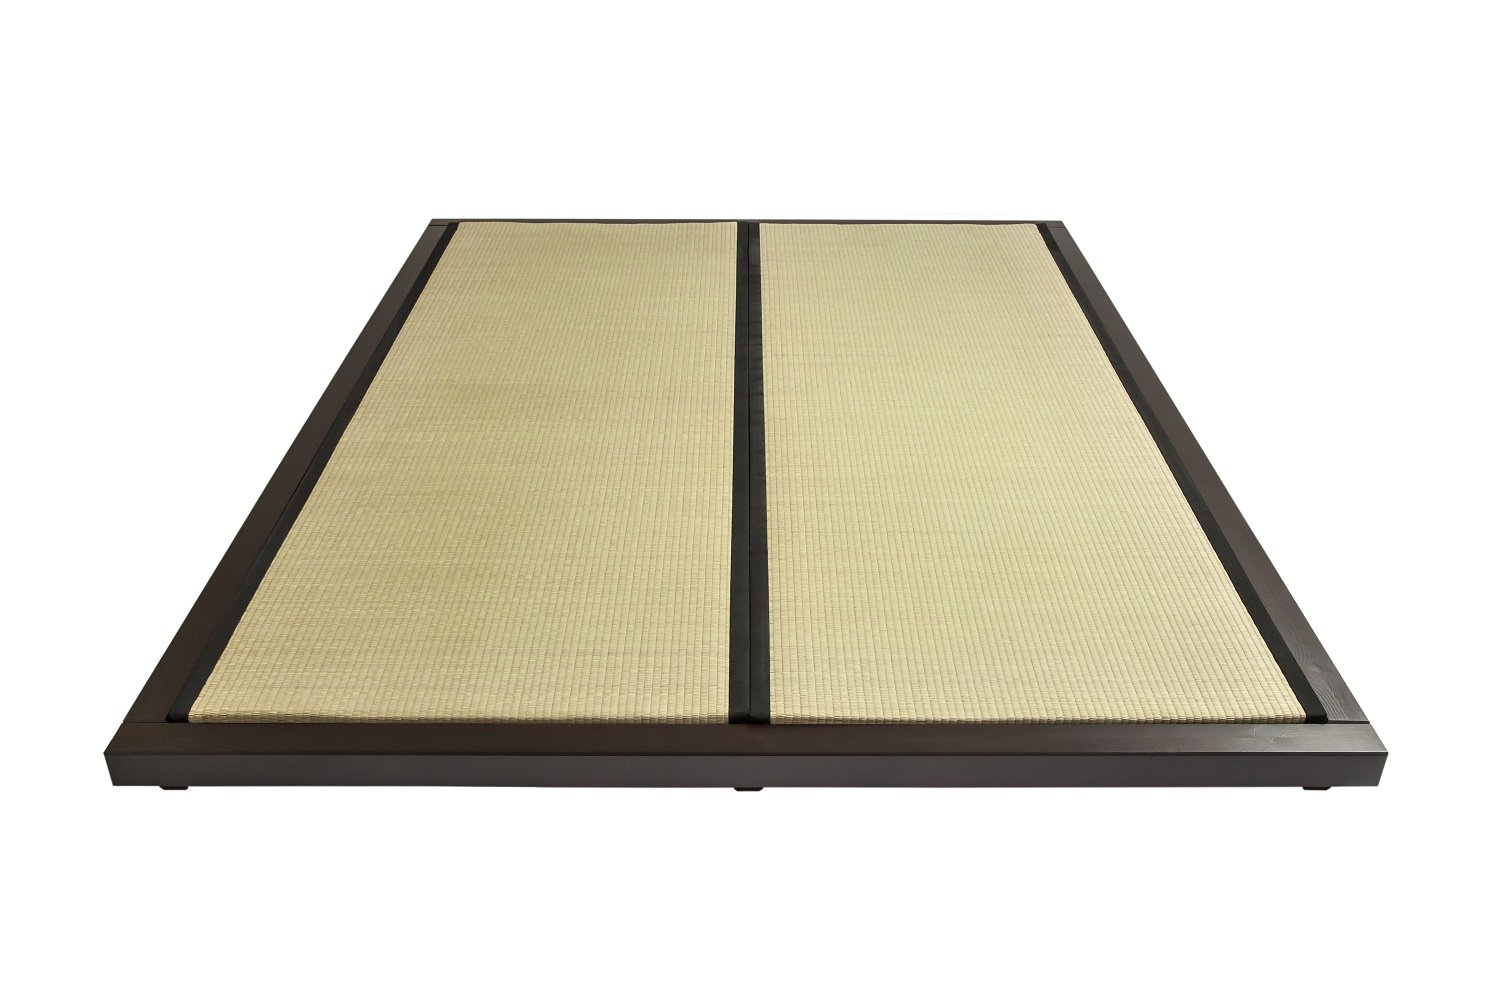 dock bed frame with tatami mats oriental style low level bed choice of sizes - Tatami Bed